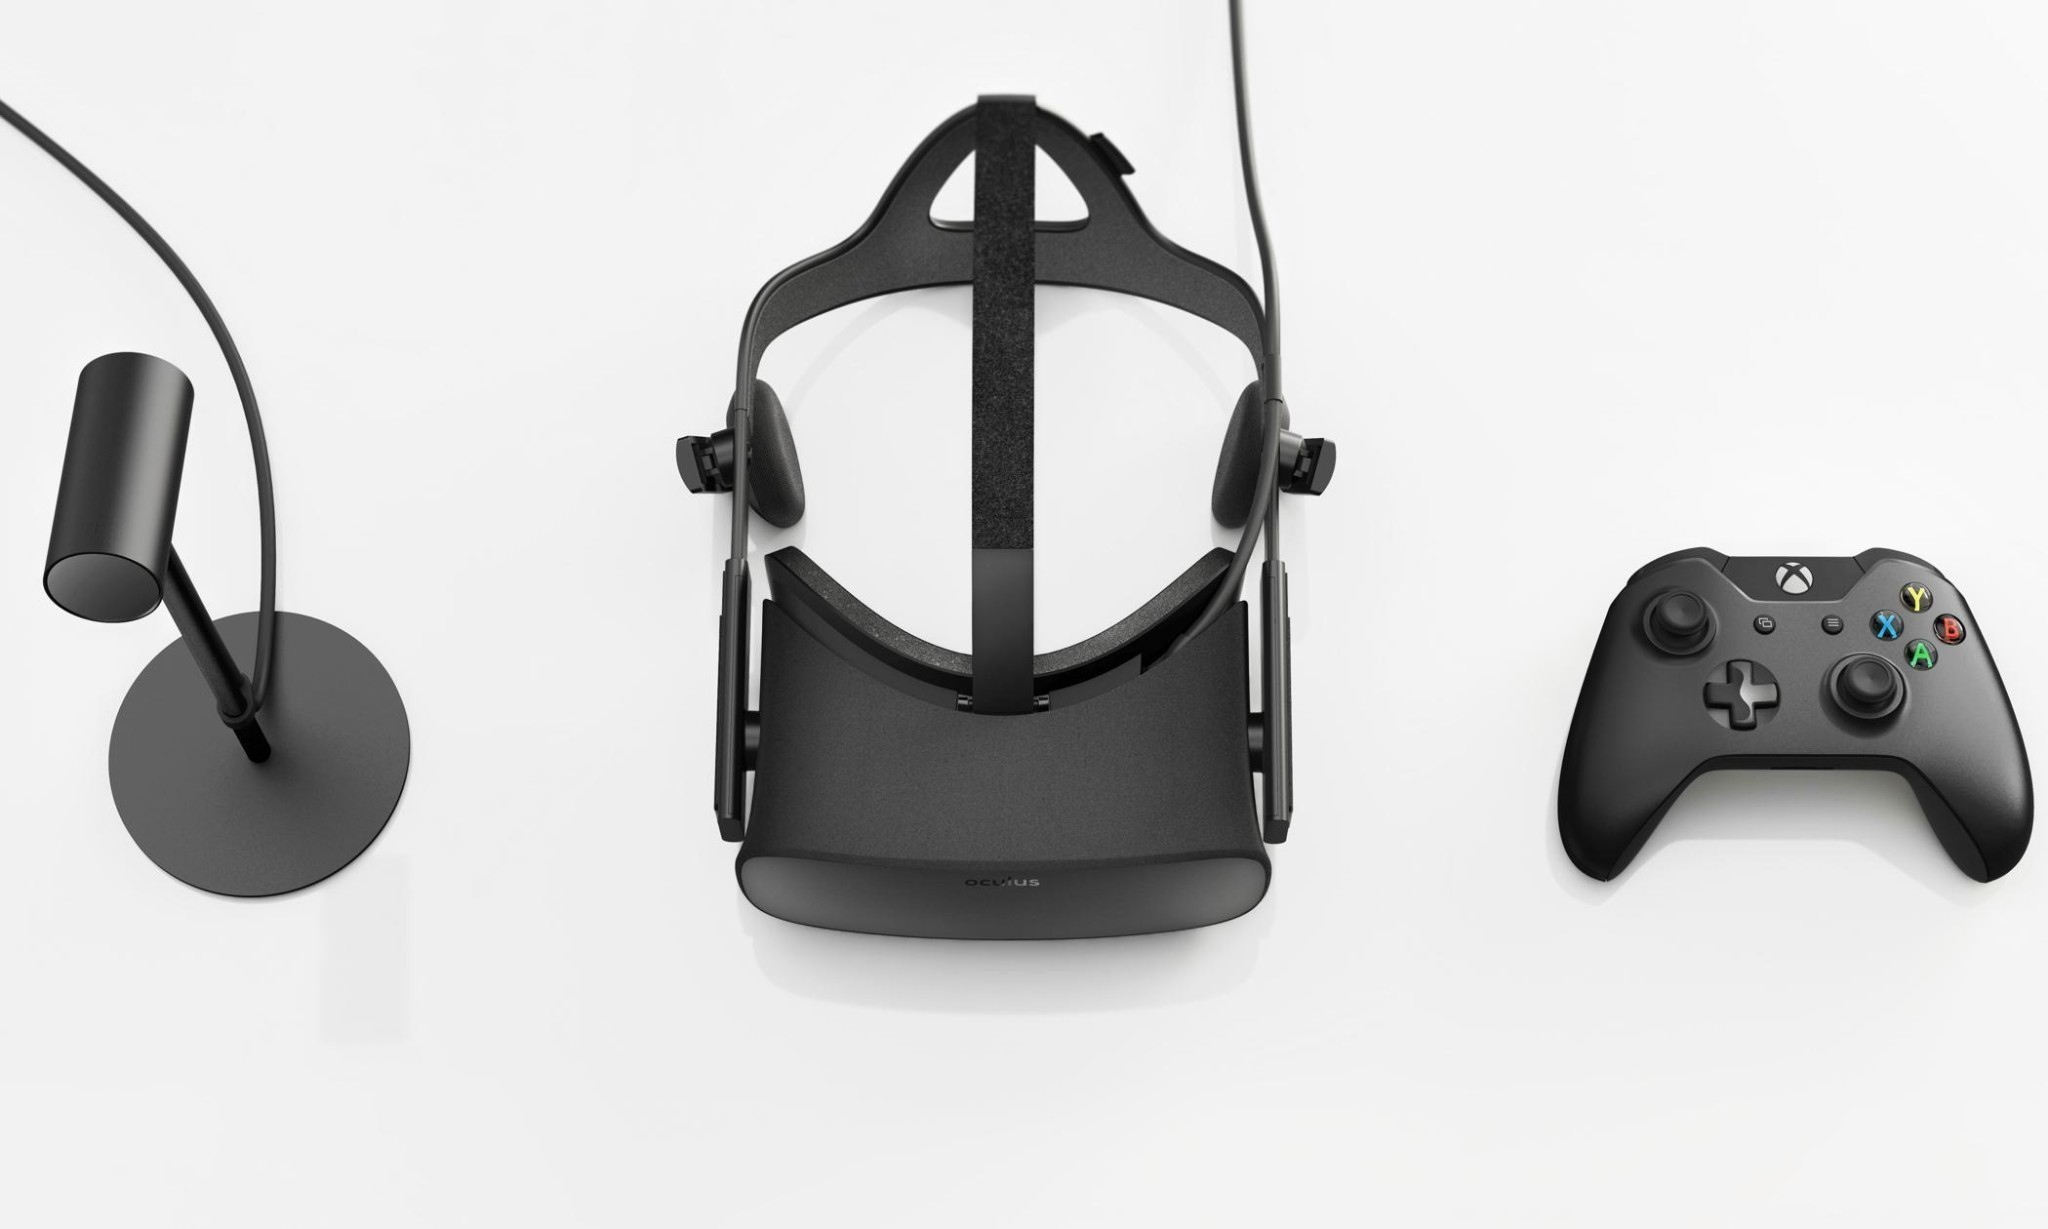 Oculus Rift: Facebook's virtual reality headset is here – at a price